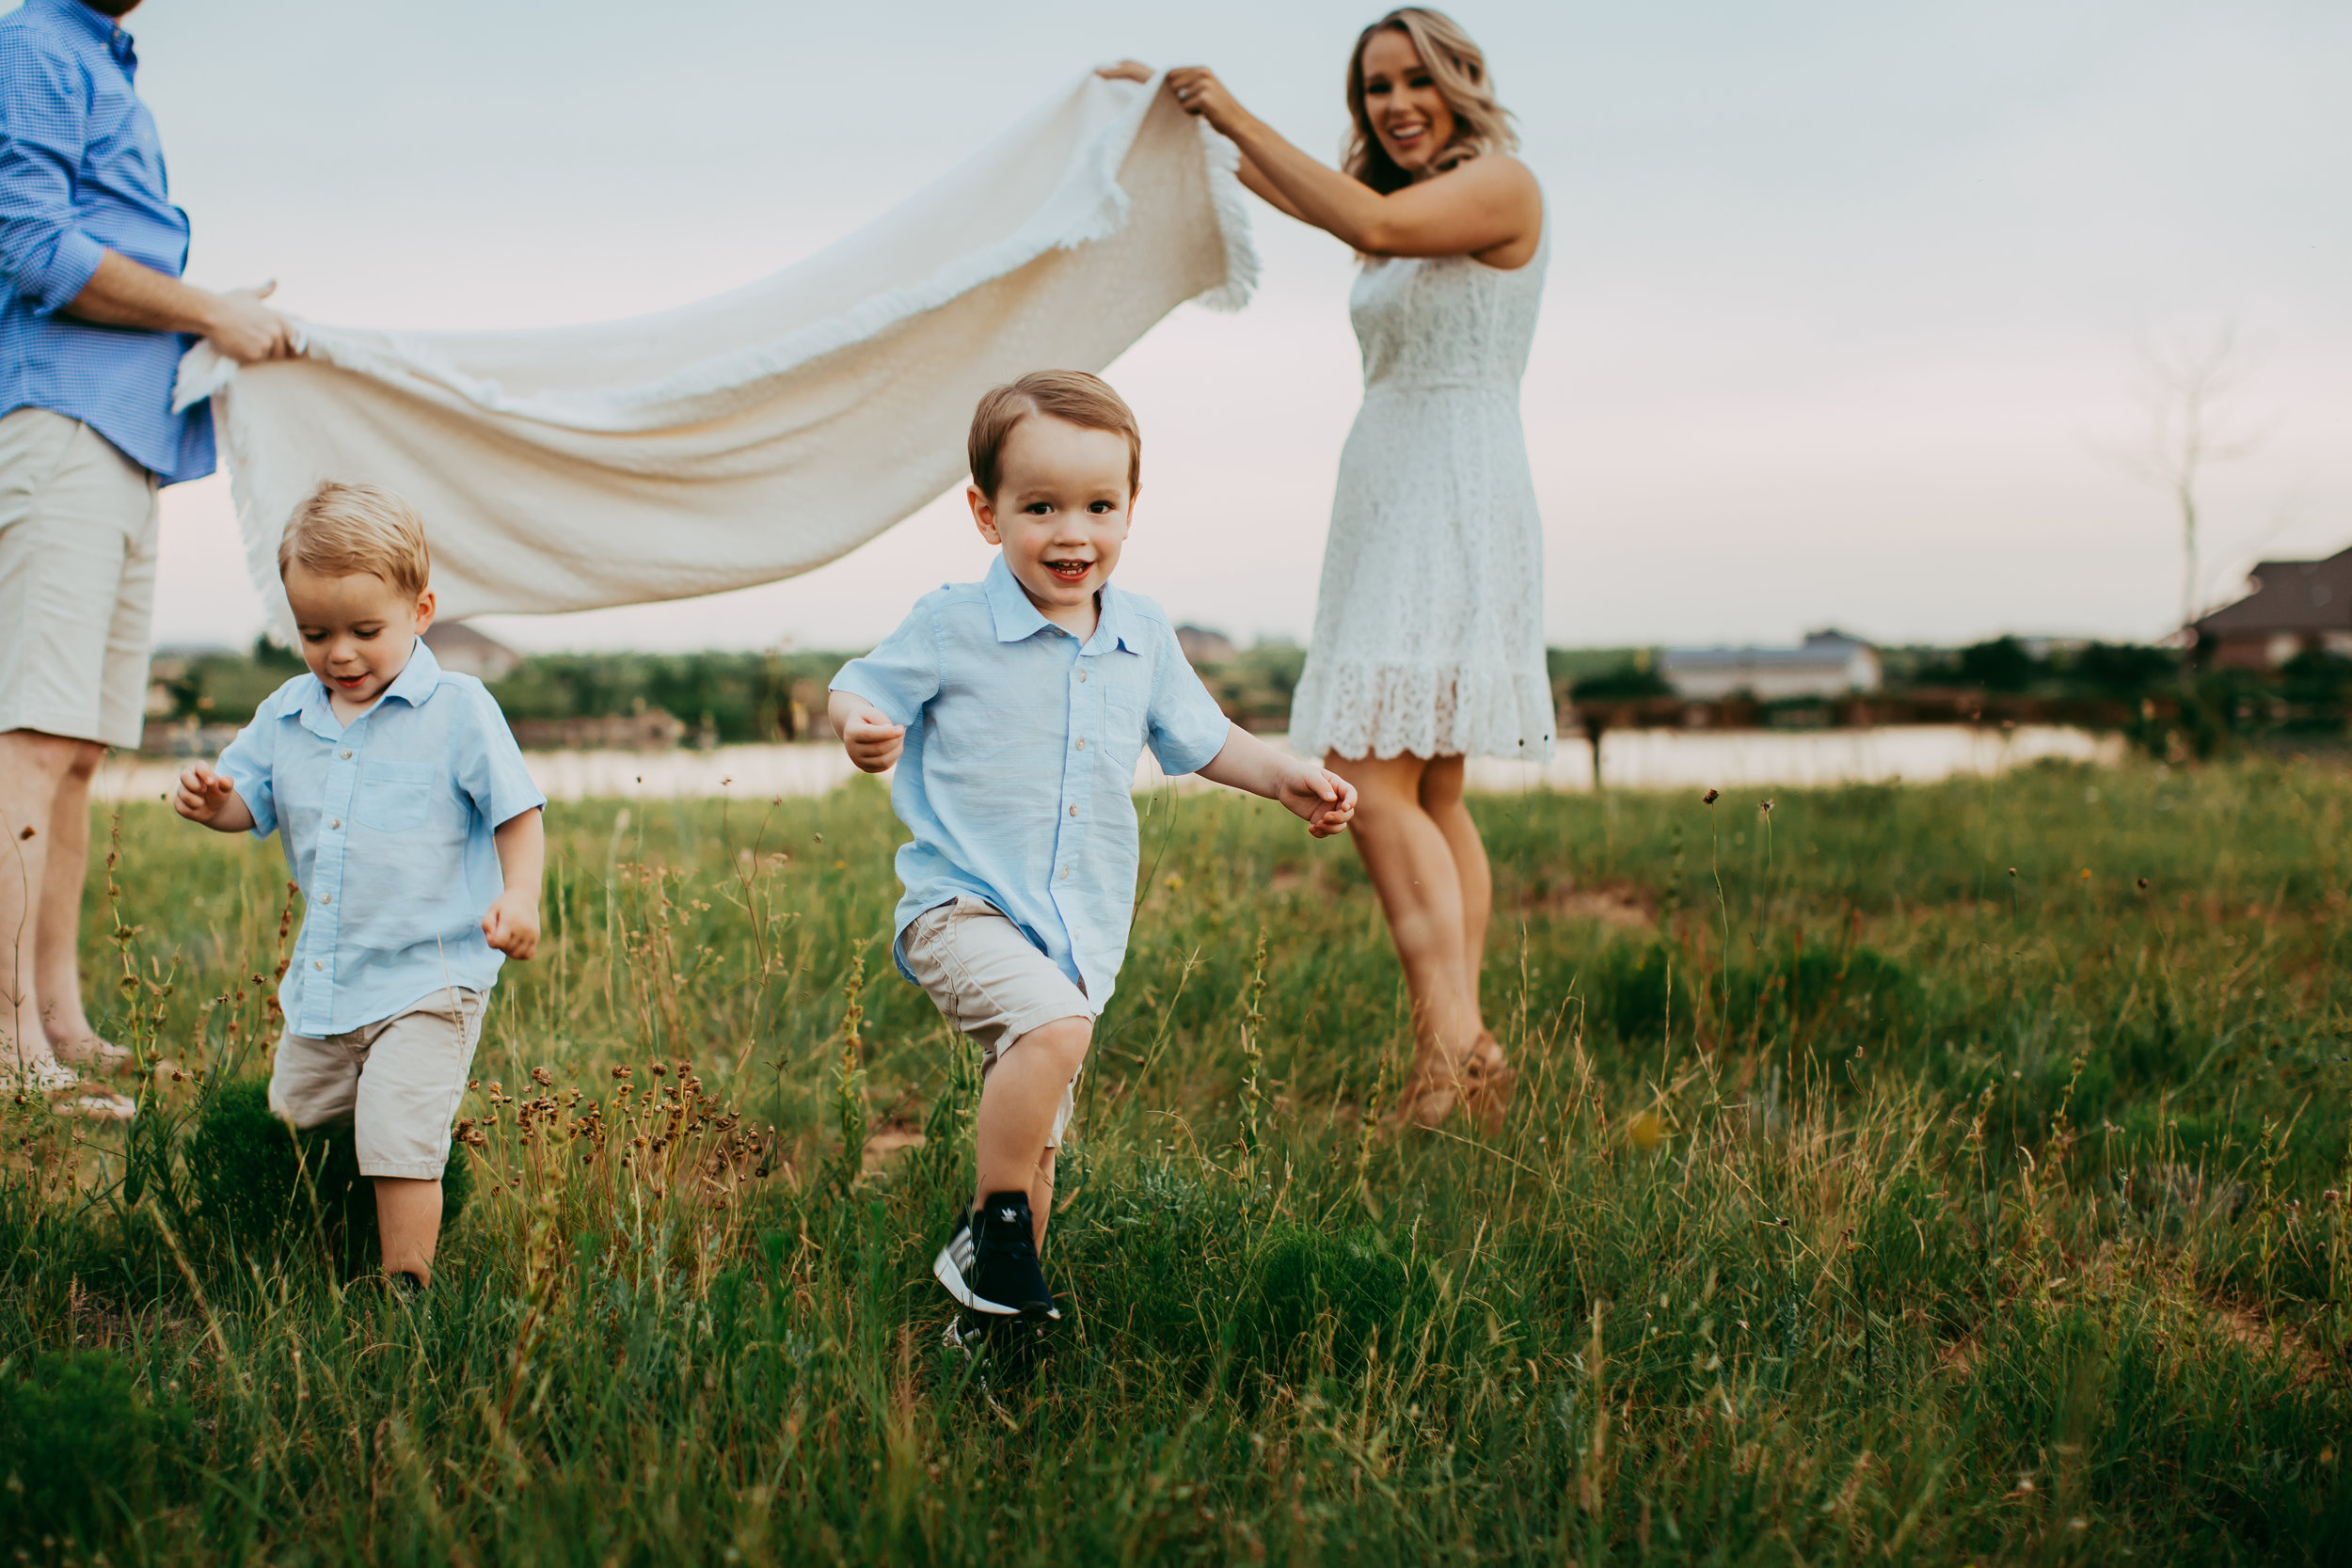 Boys having fun running under picnic blanket #tealawardphotography #texasfamilyphotographer #amarillophotographer #amarillofamilyphotographer #lifestylephotography #emotionalphotography #familyphotosoot #family #lovingsiblings #purejoy #familyphotos #familyphotographer #greatoutdoors #naturalfamilyinteraction